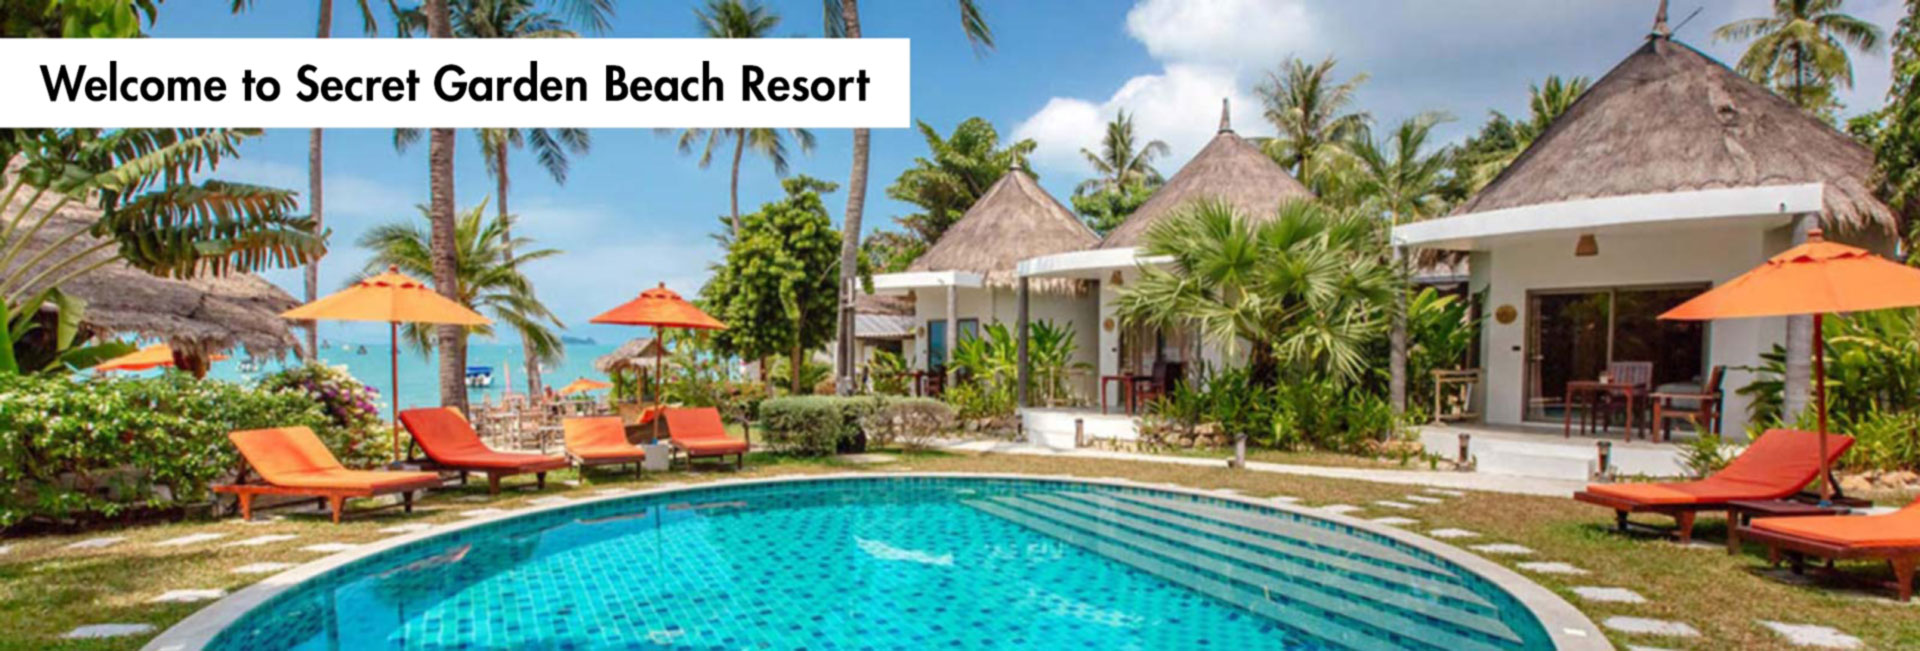 Secret Garden Beach Resort Koh Samui Thailand